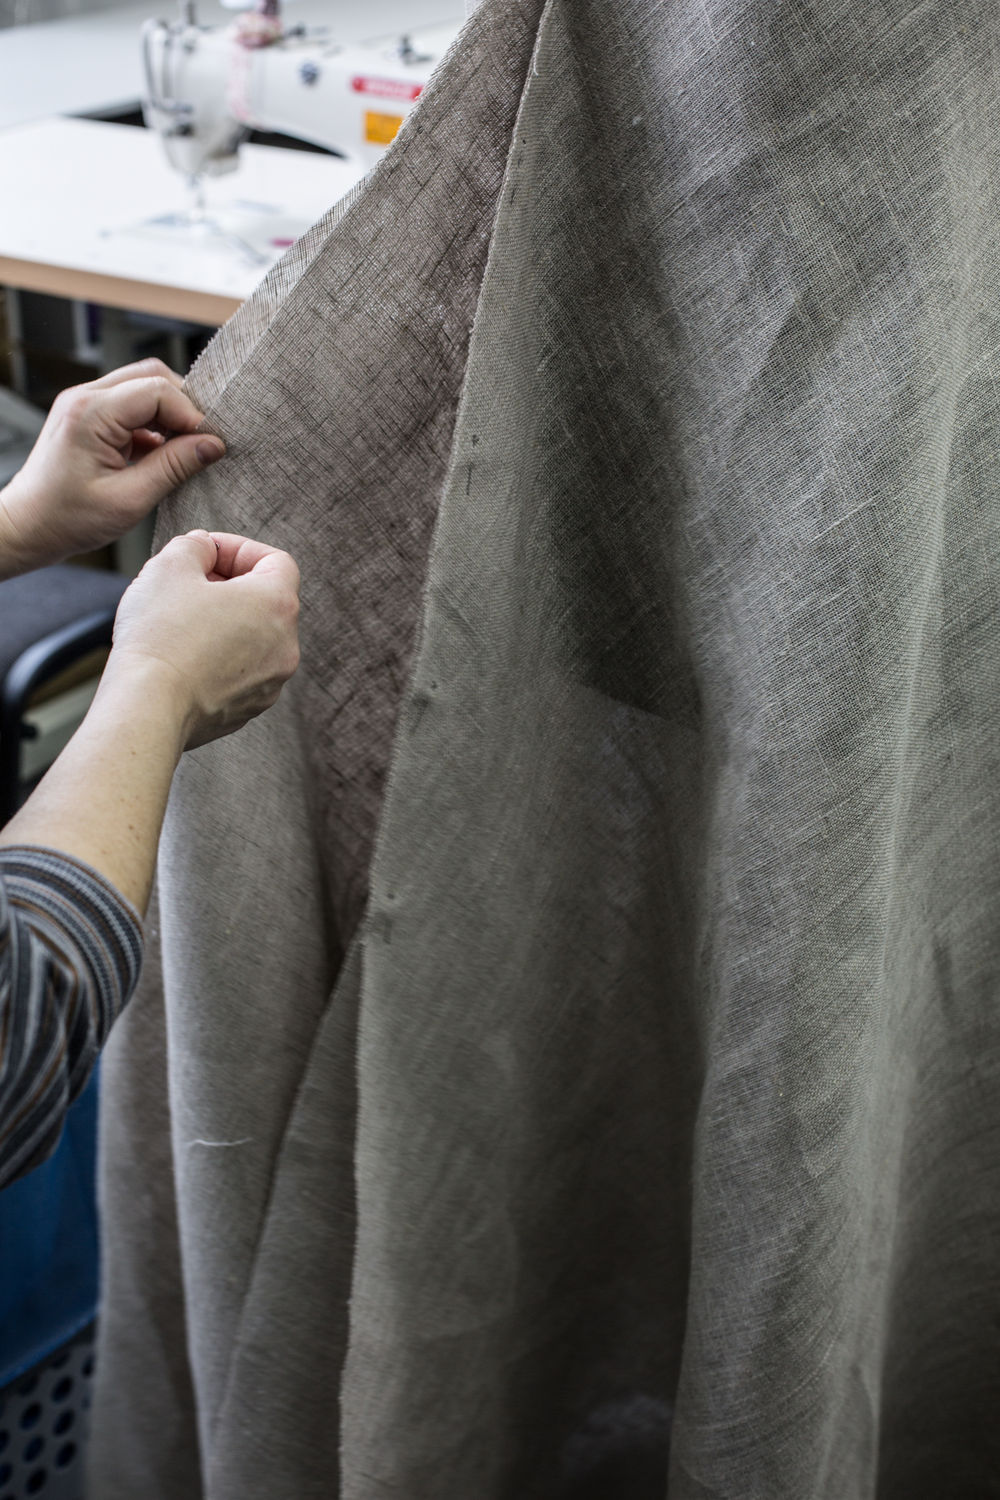 The creation of new sackcloth dress at ArmStreet